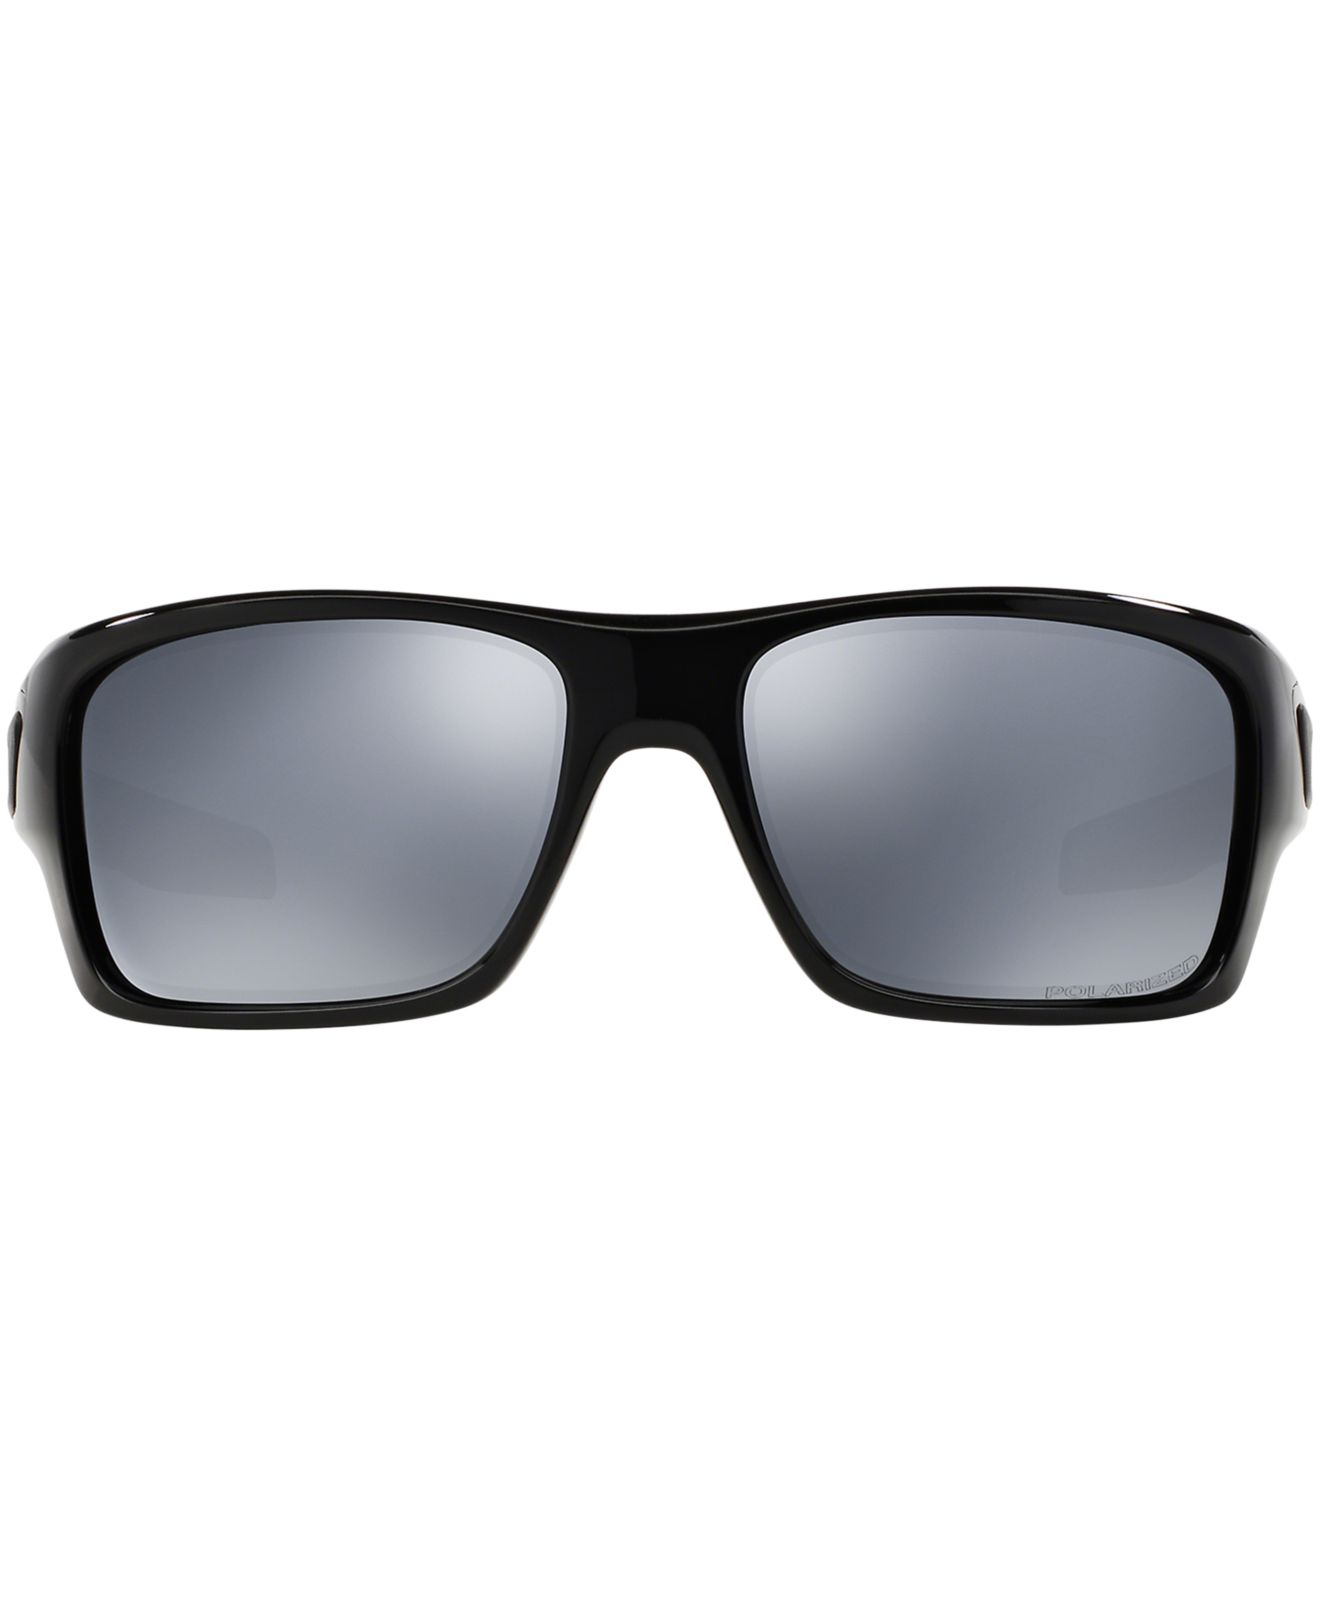 Cheap Oakley Turbine Sunglasses « Heritage Malta b49f0cbb3c